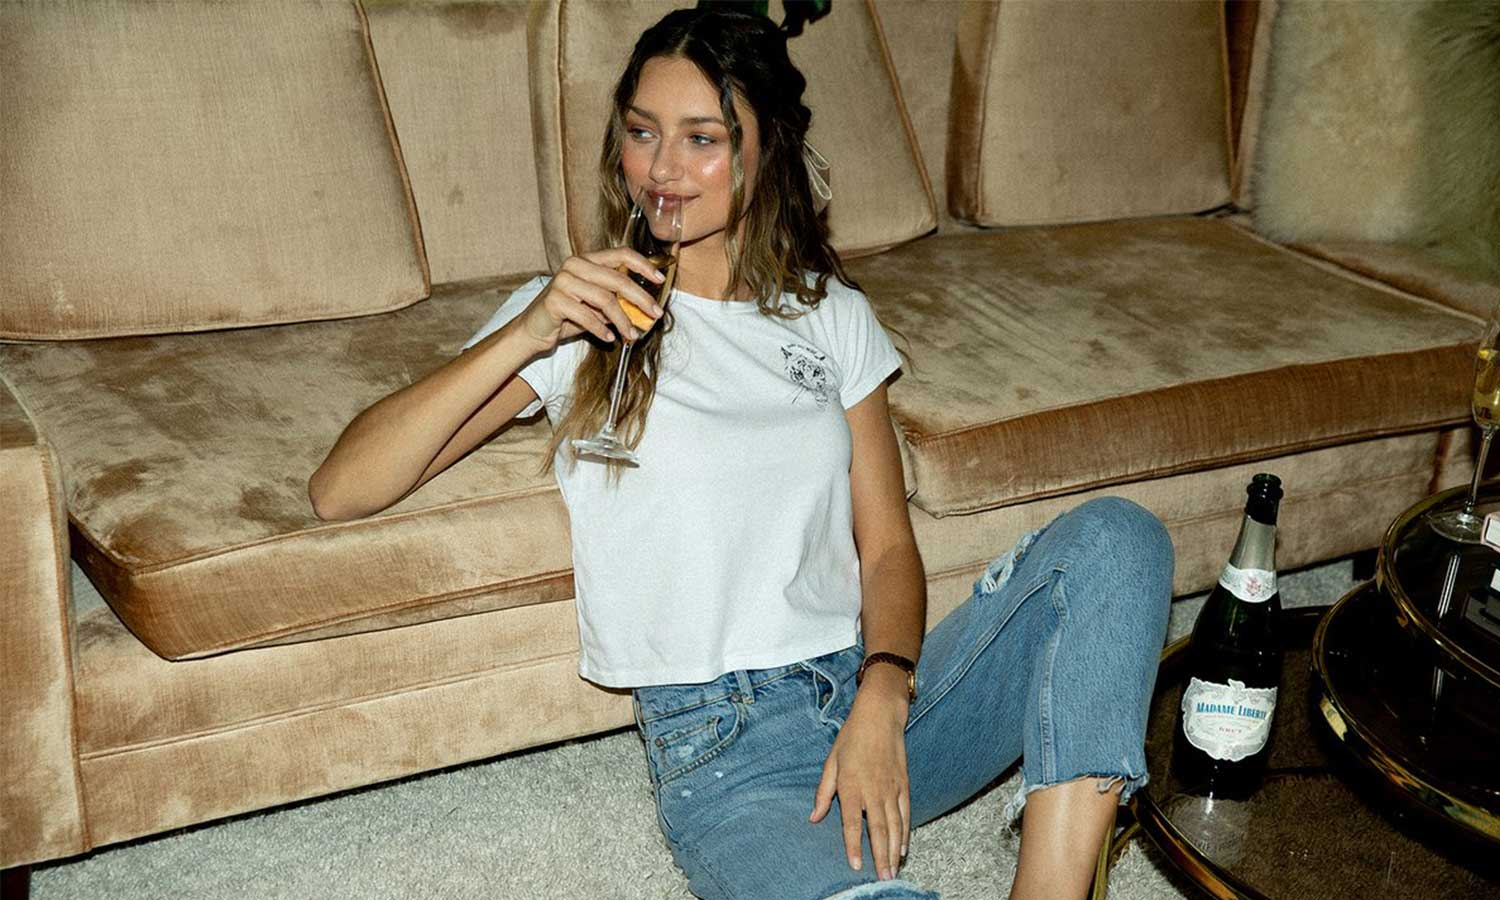 Girl on the floor sipping a glass of champagne